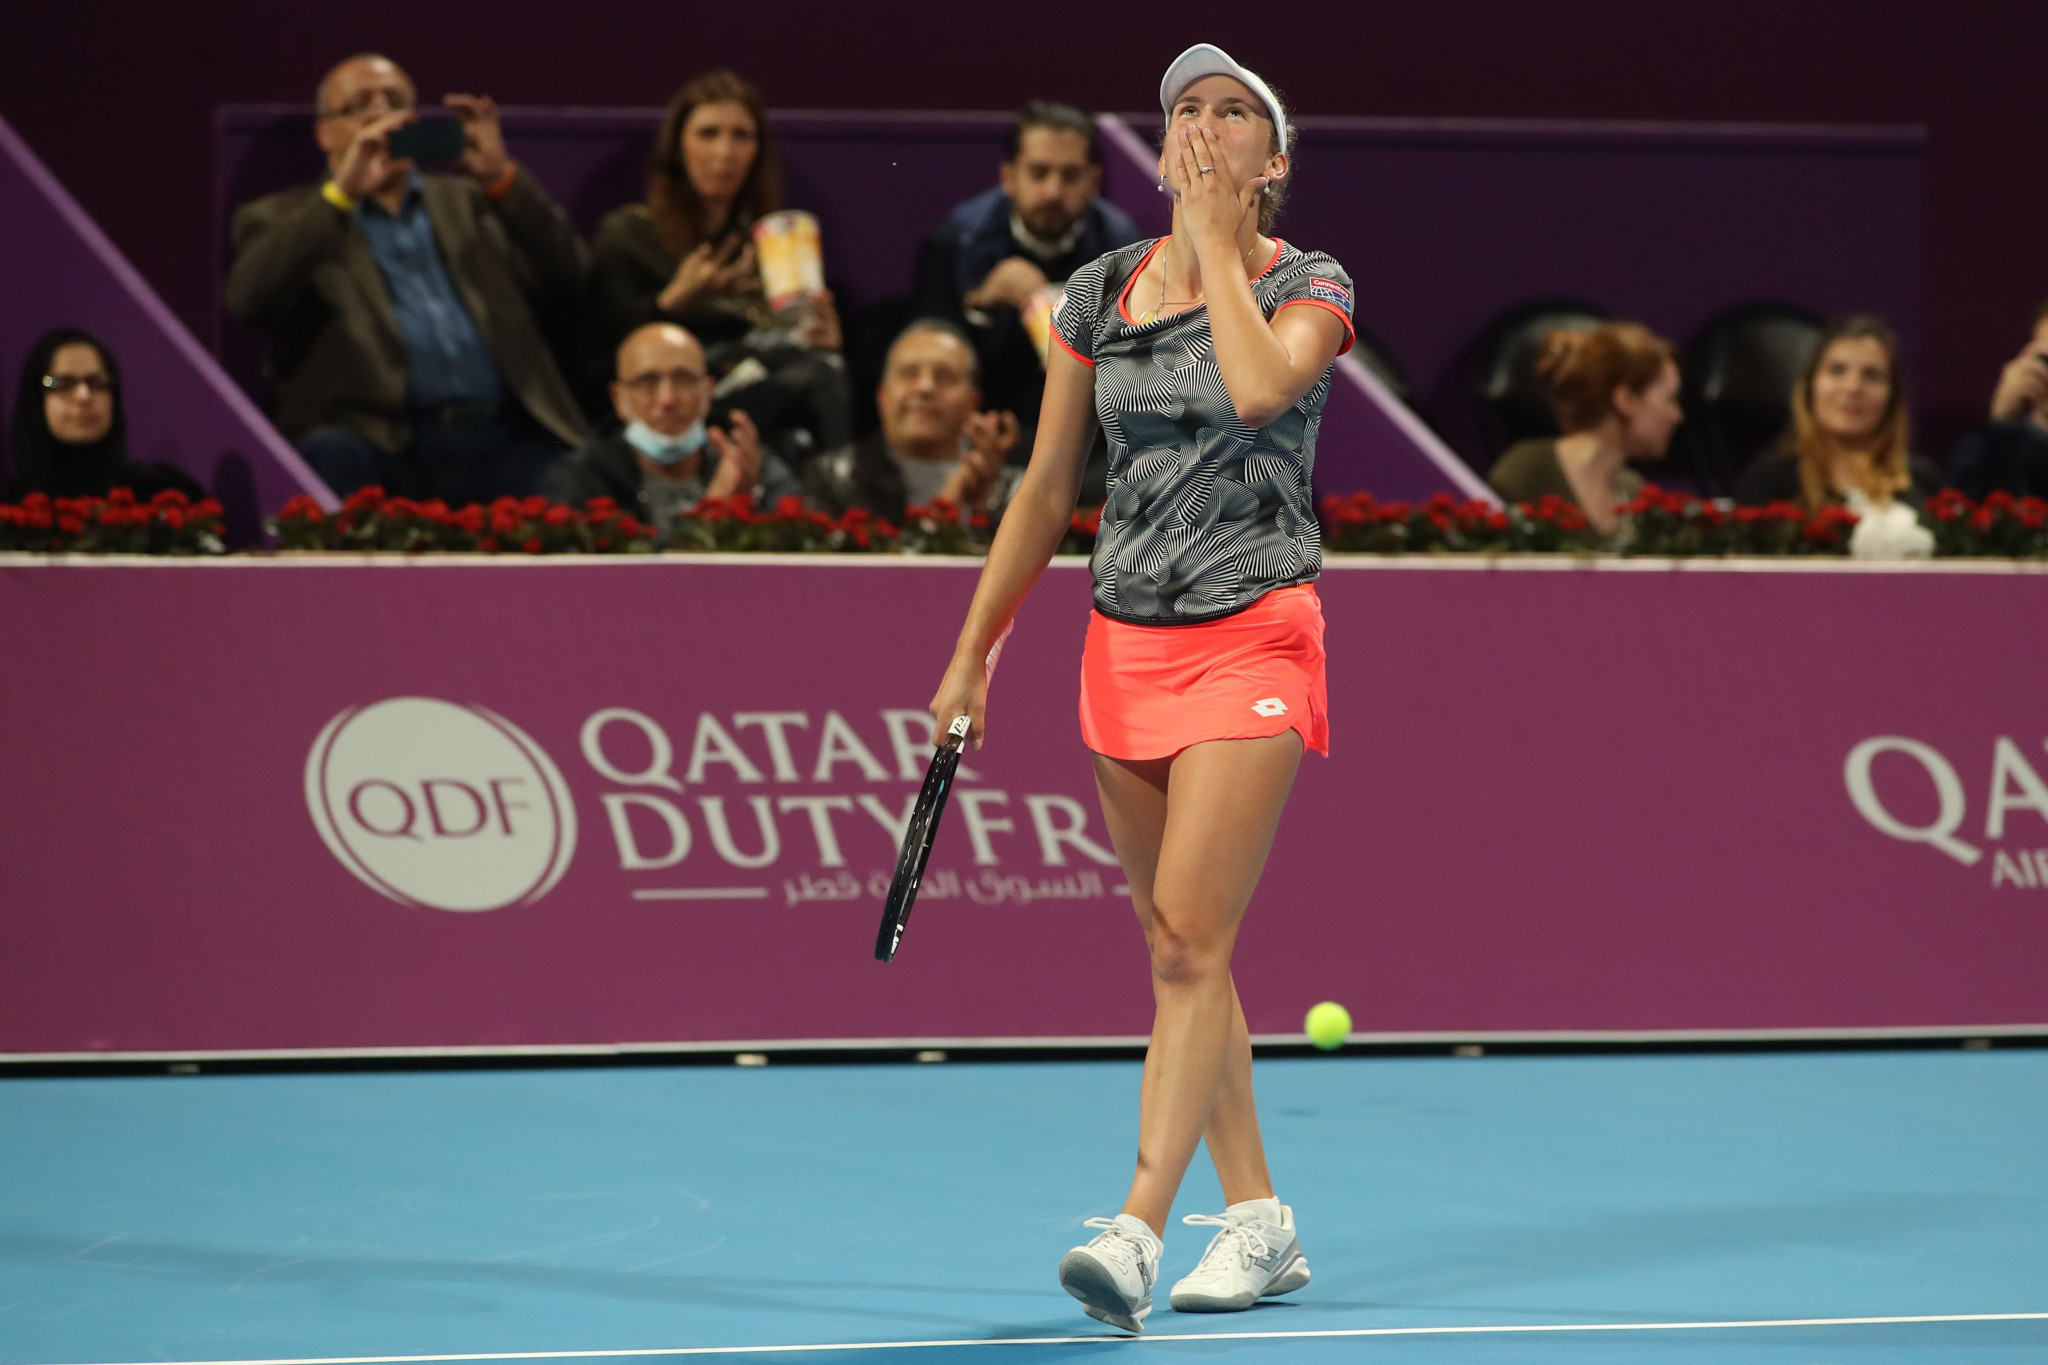 Belgium's Elise Mertens celebrates after winning her semi-final against Germany's Angelique Kerber in Doha ©Getty Images